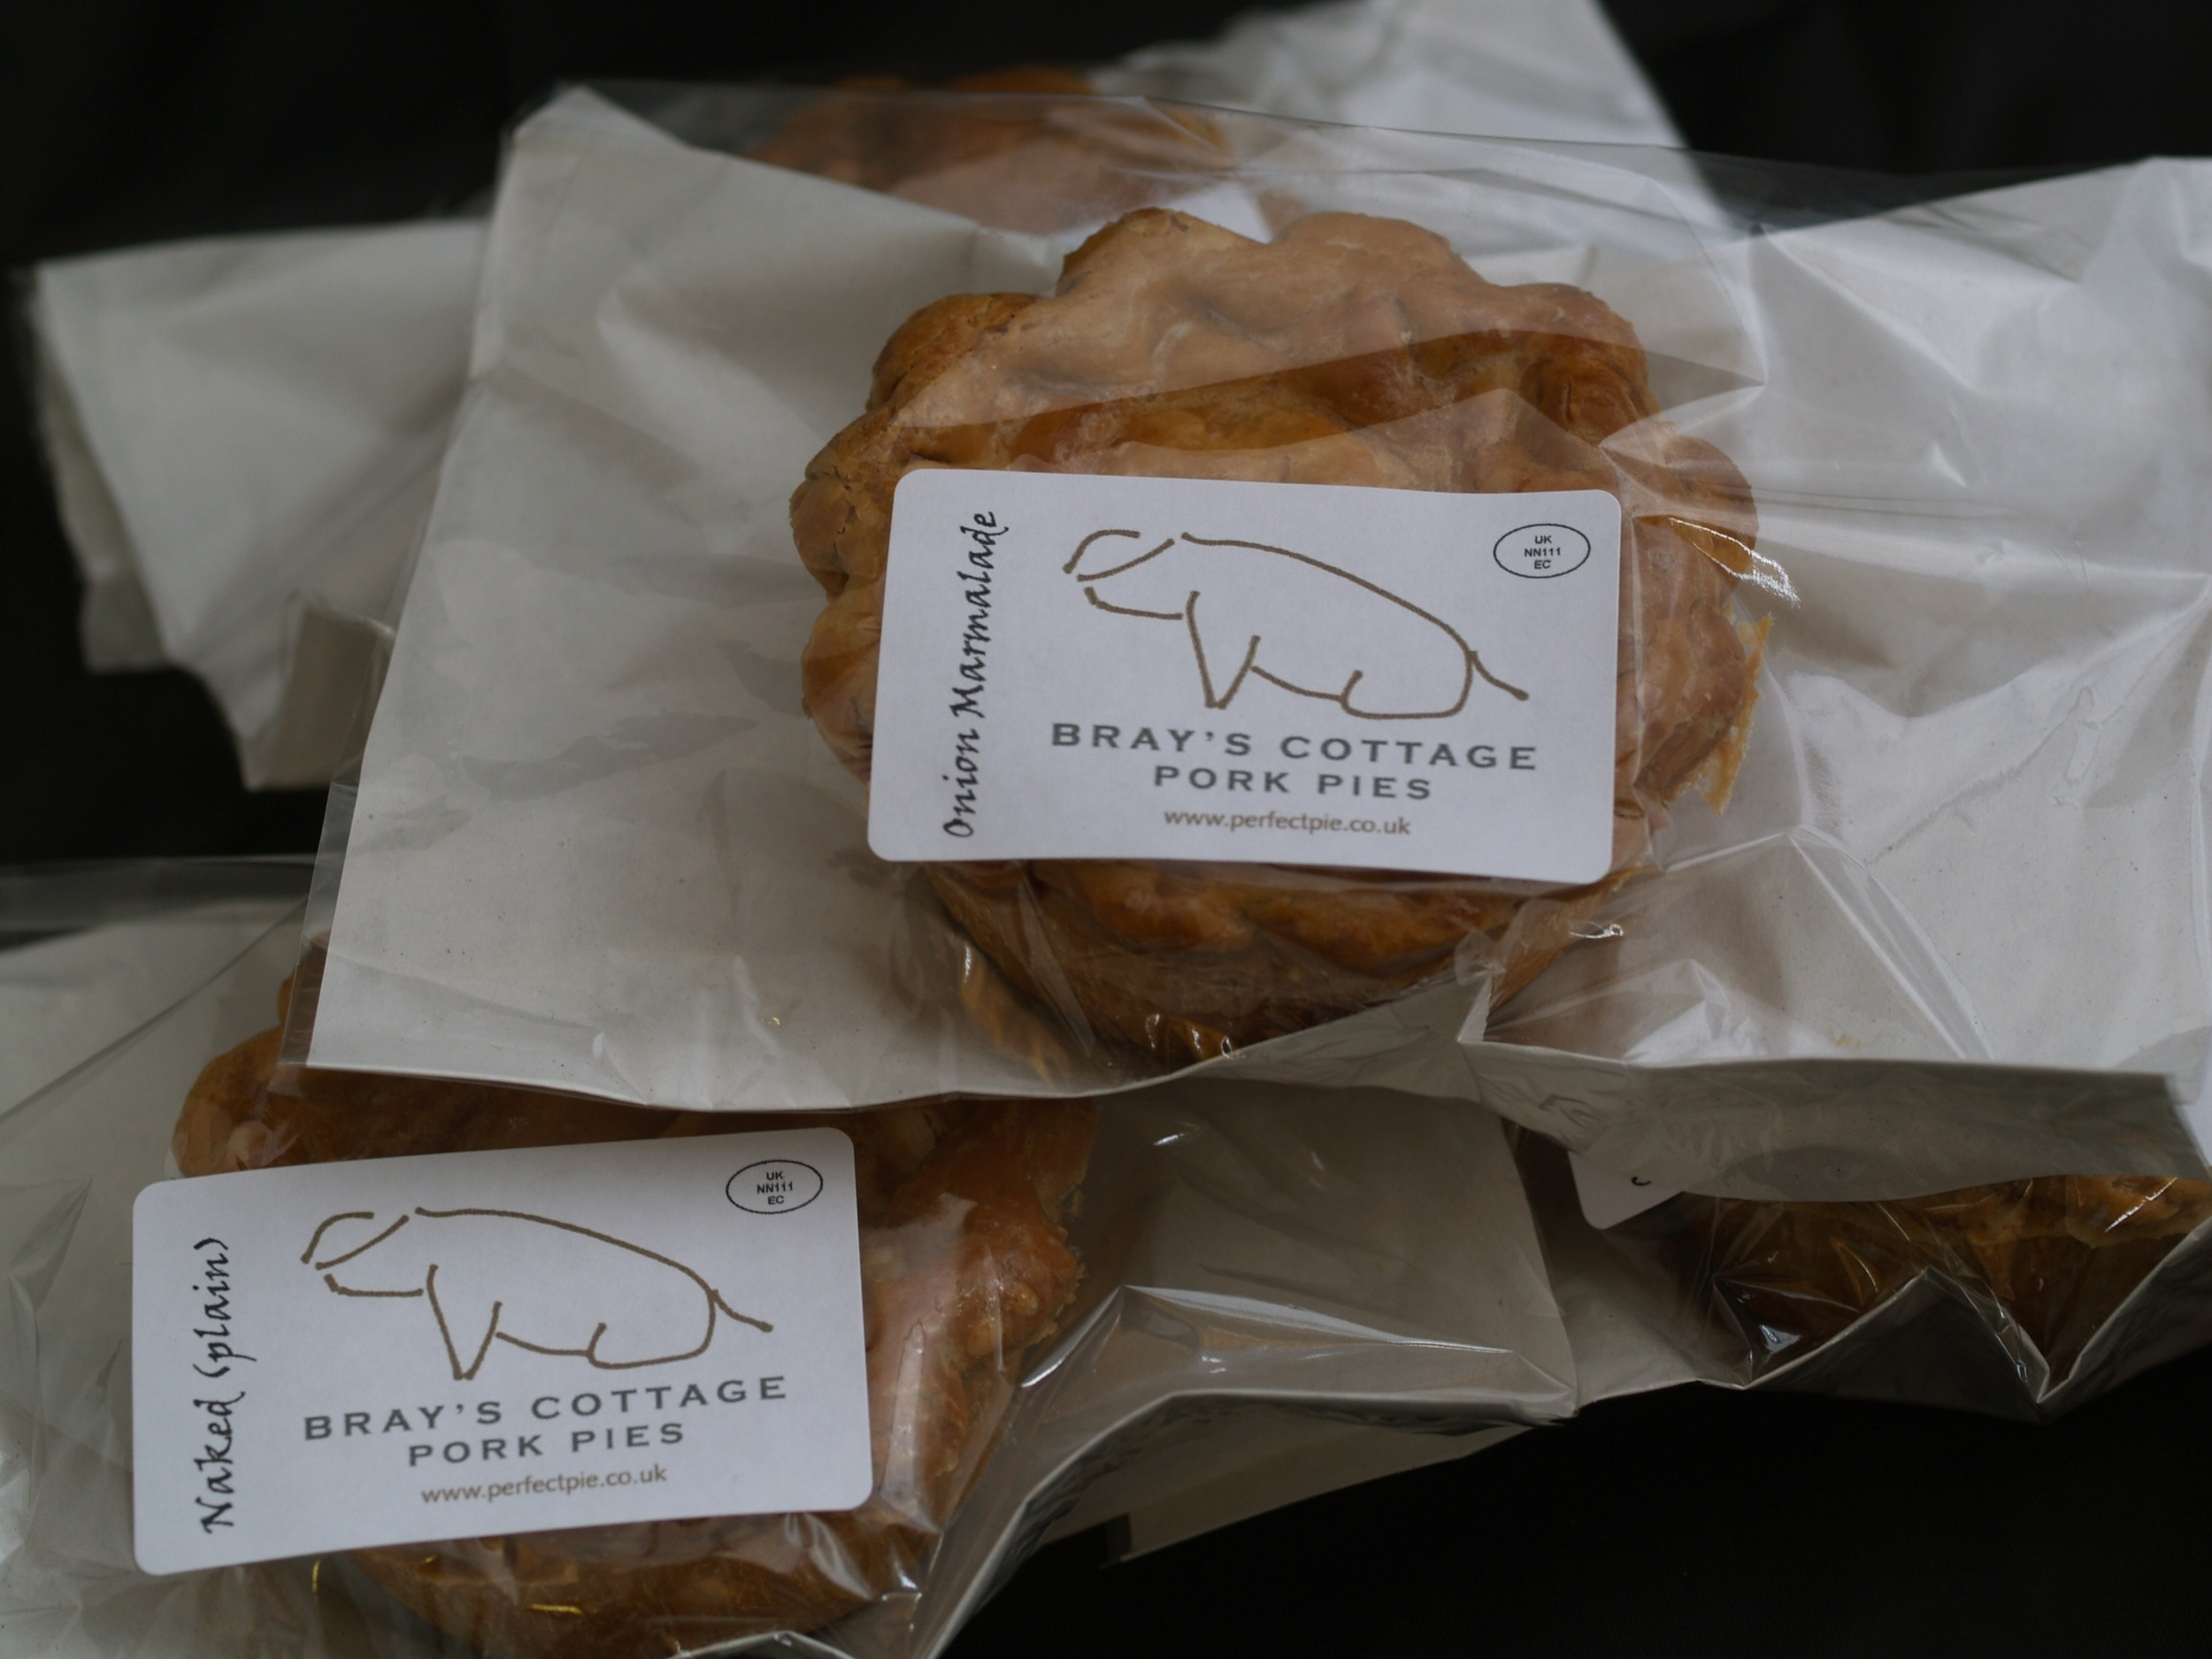 Naked, Onion Marmalade, Chorizo, Chilli, Piccalilli, pork pies from Brays Cottage. Handmade in Norfolk